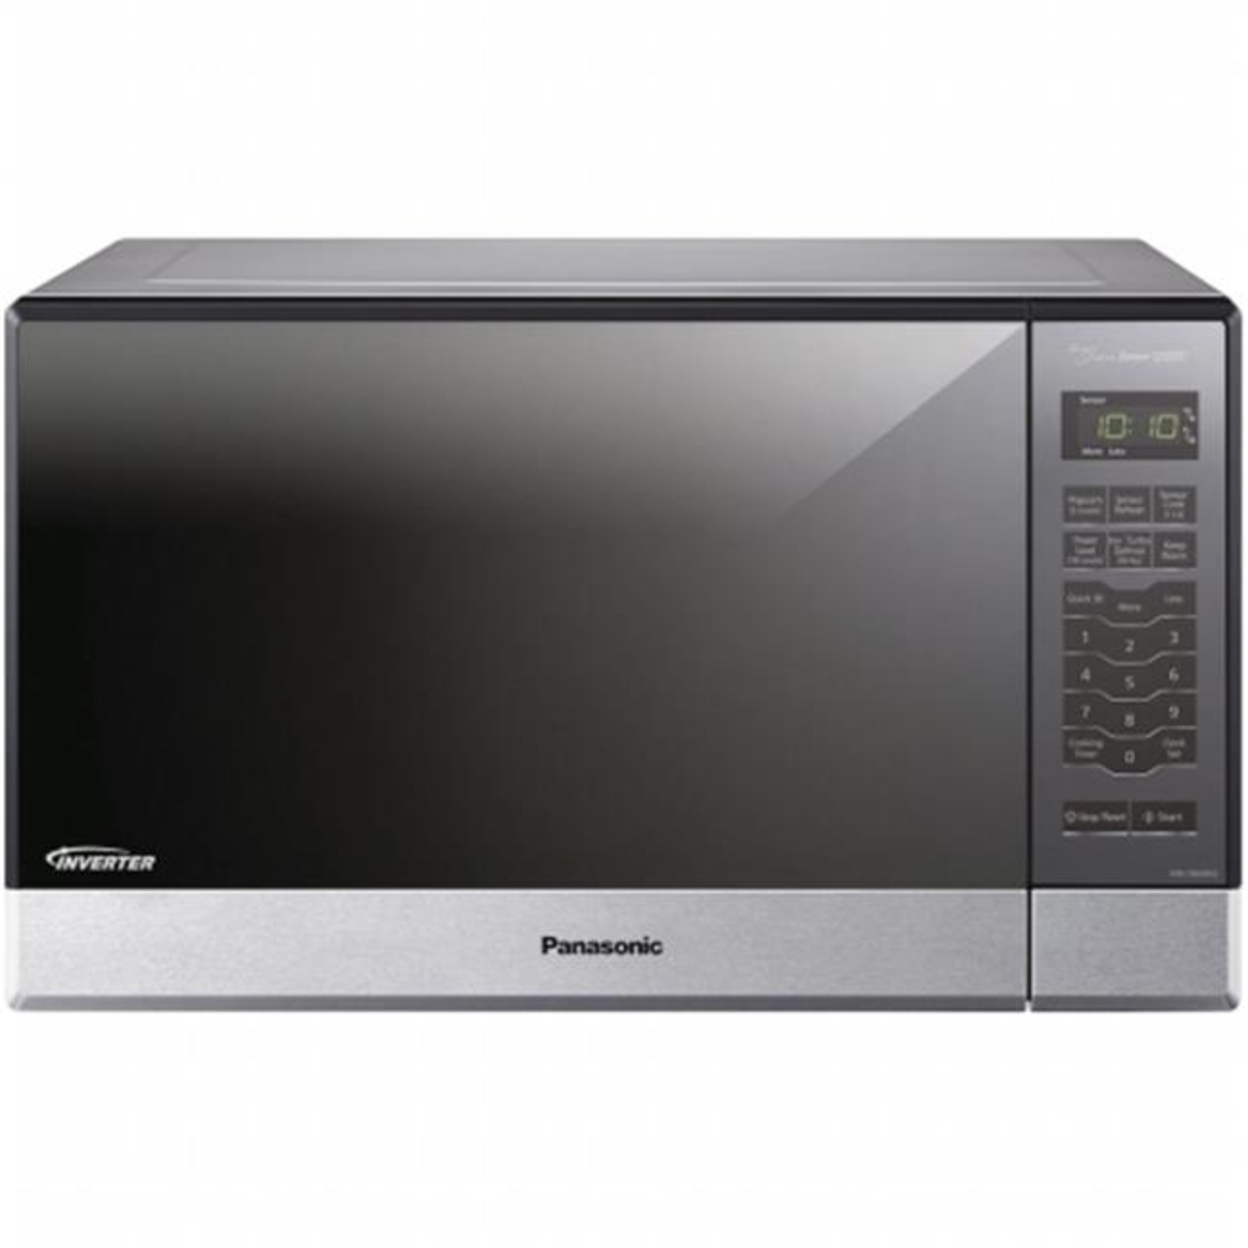 Panasonic Nn-Sn686S Countertop-Built-In Microwave Stainless - 1.2 cu ft.